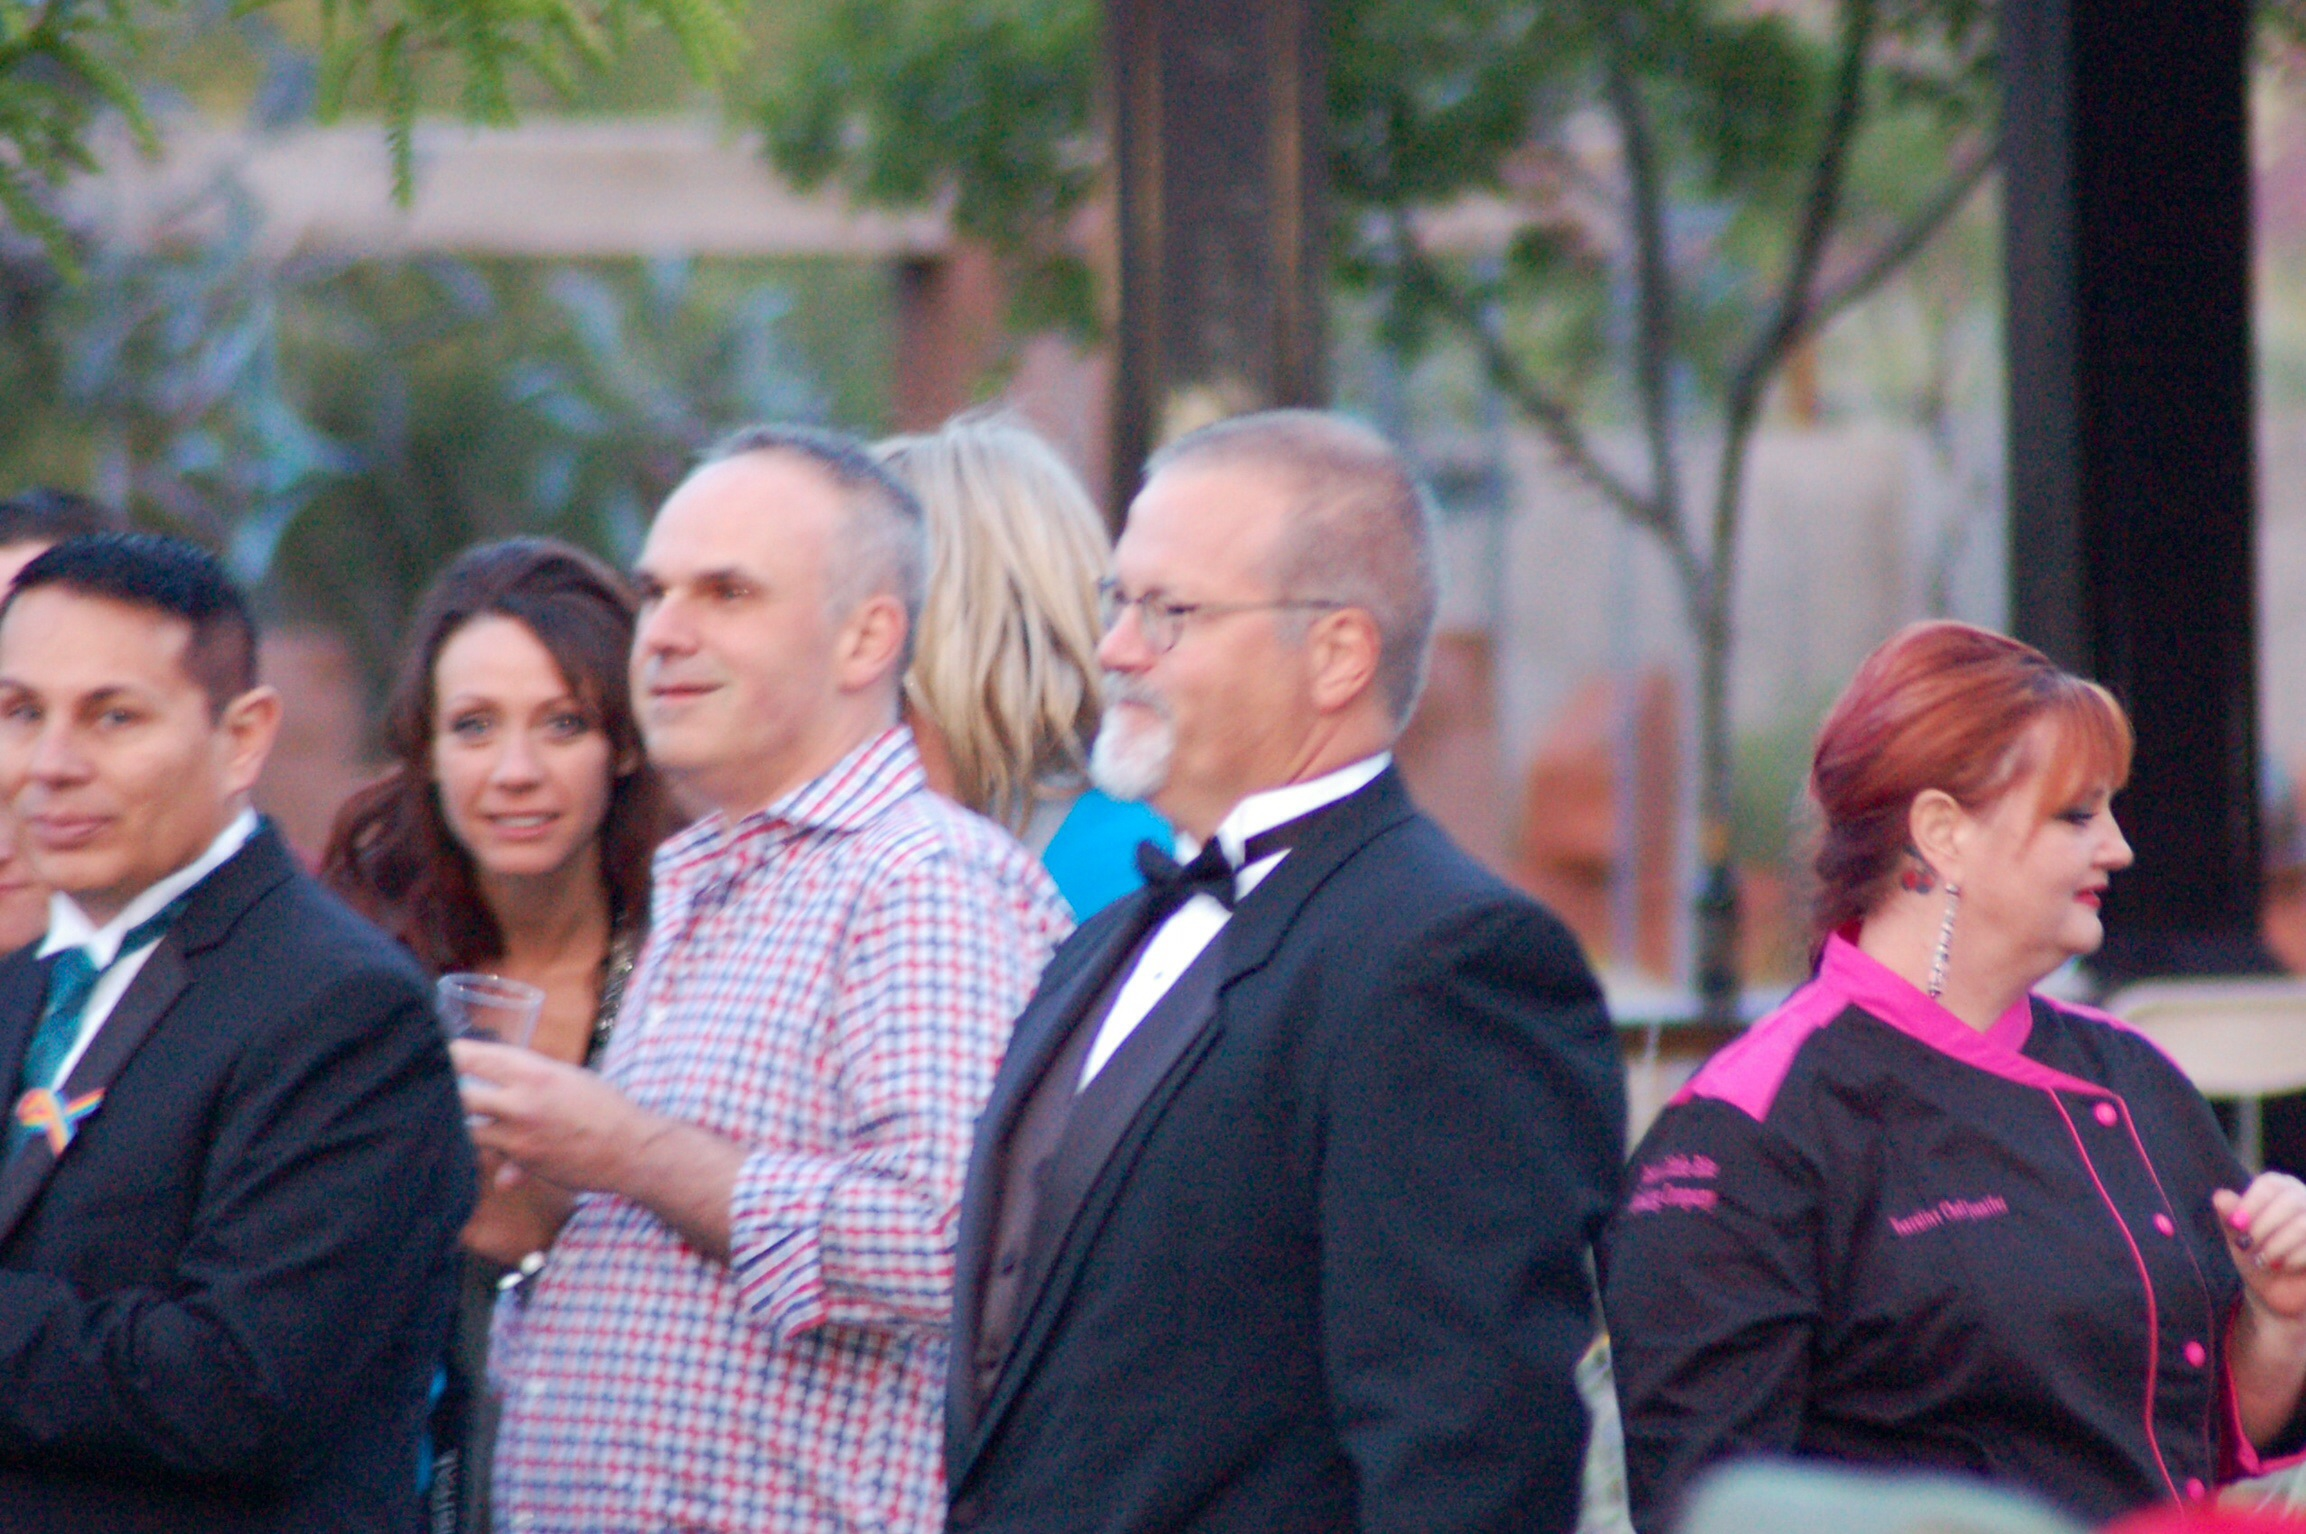 Sen. Steve Urquhart attends the Equality Utah Celebration at the Kayenta Art Village, Ivins, Utah, May 9, 2015 | Photo by Hollie Reina, St. George News